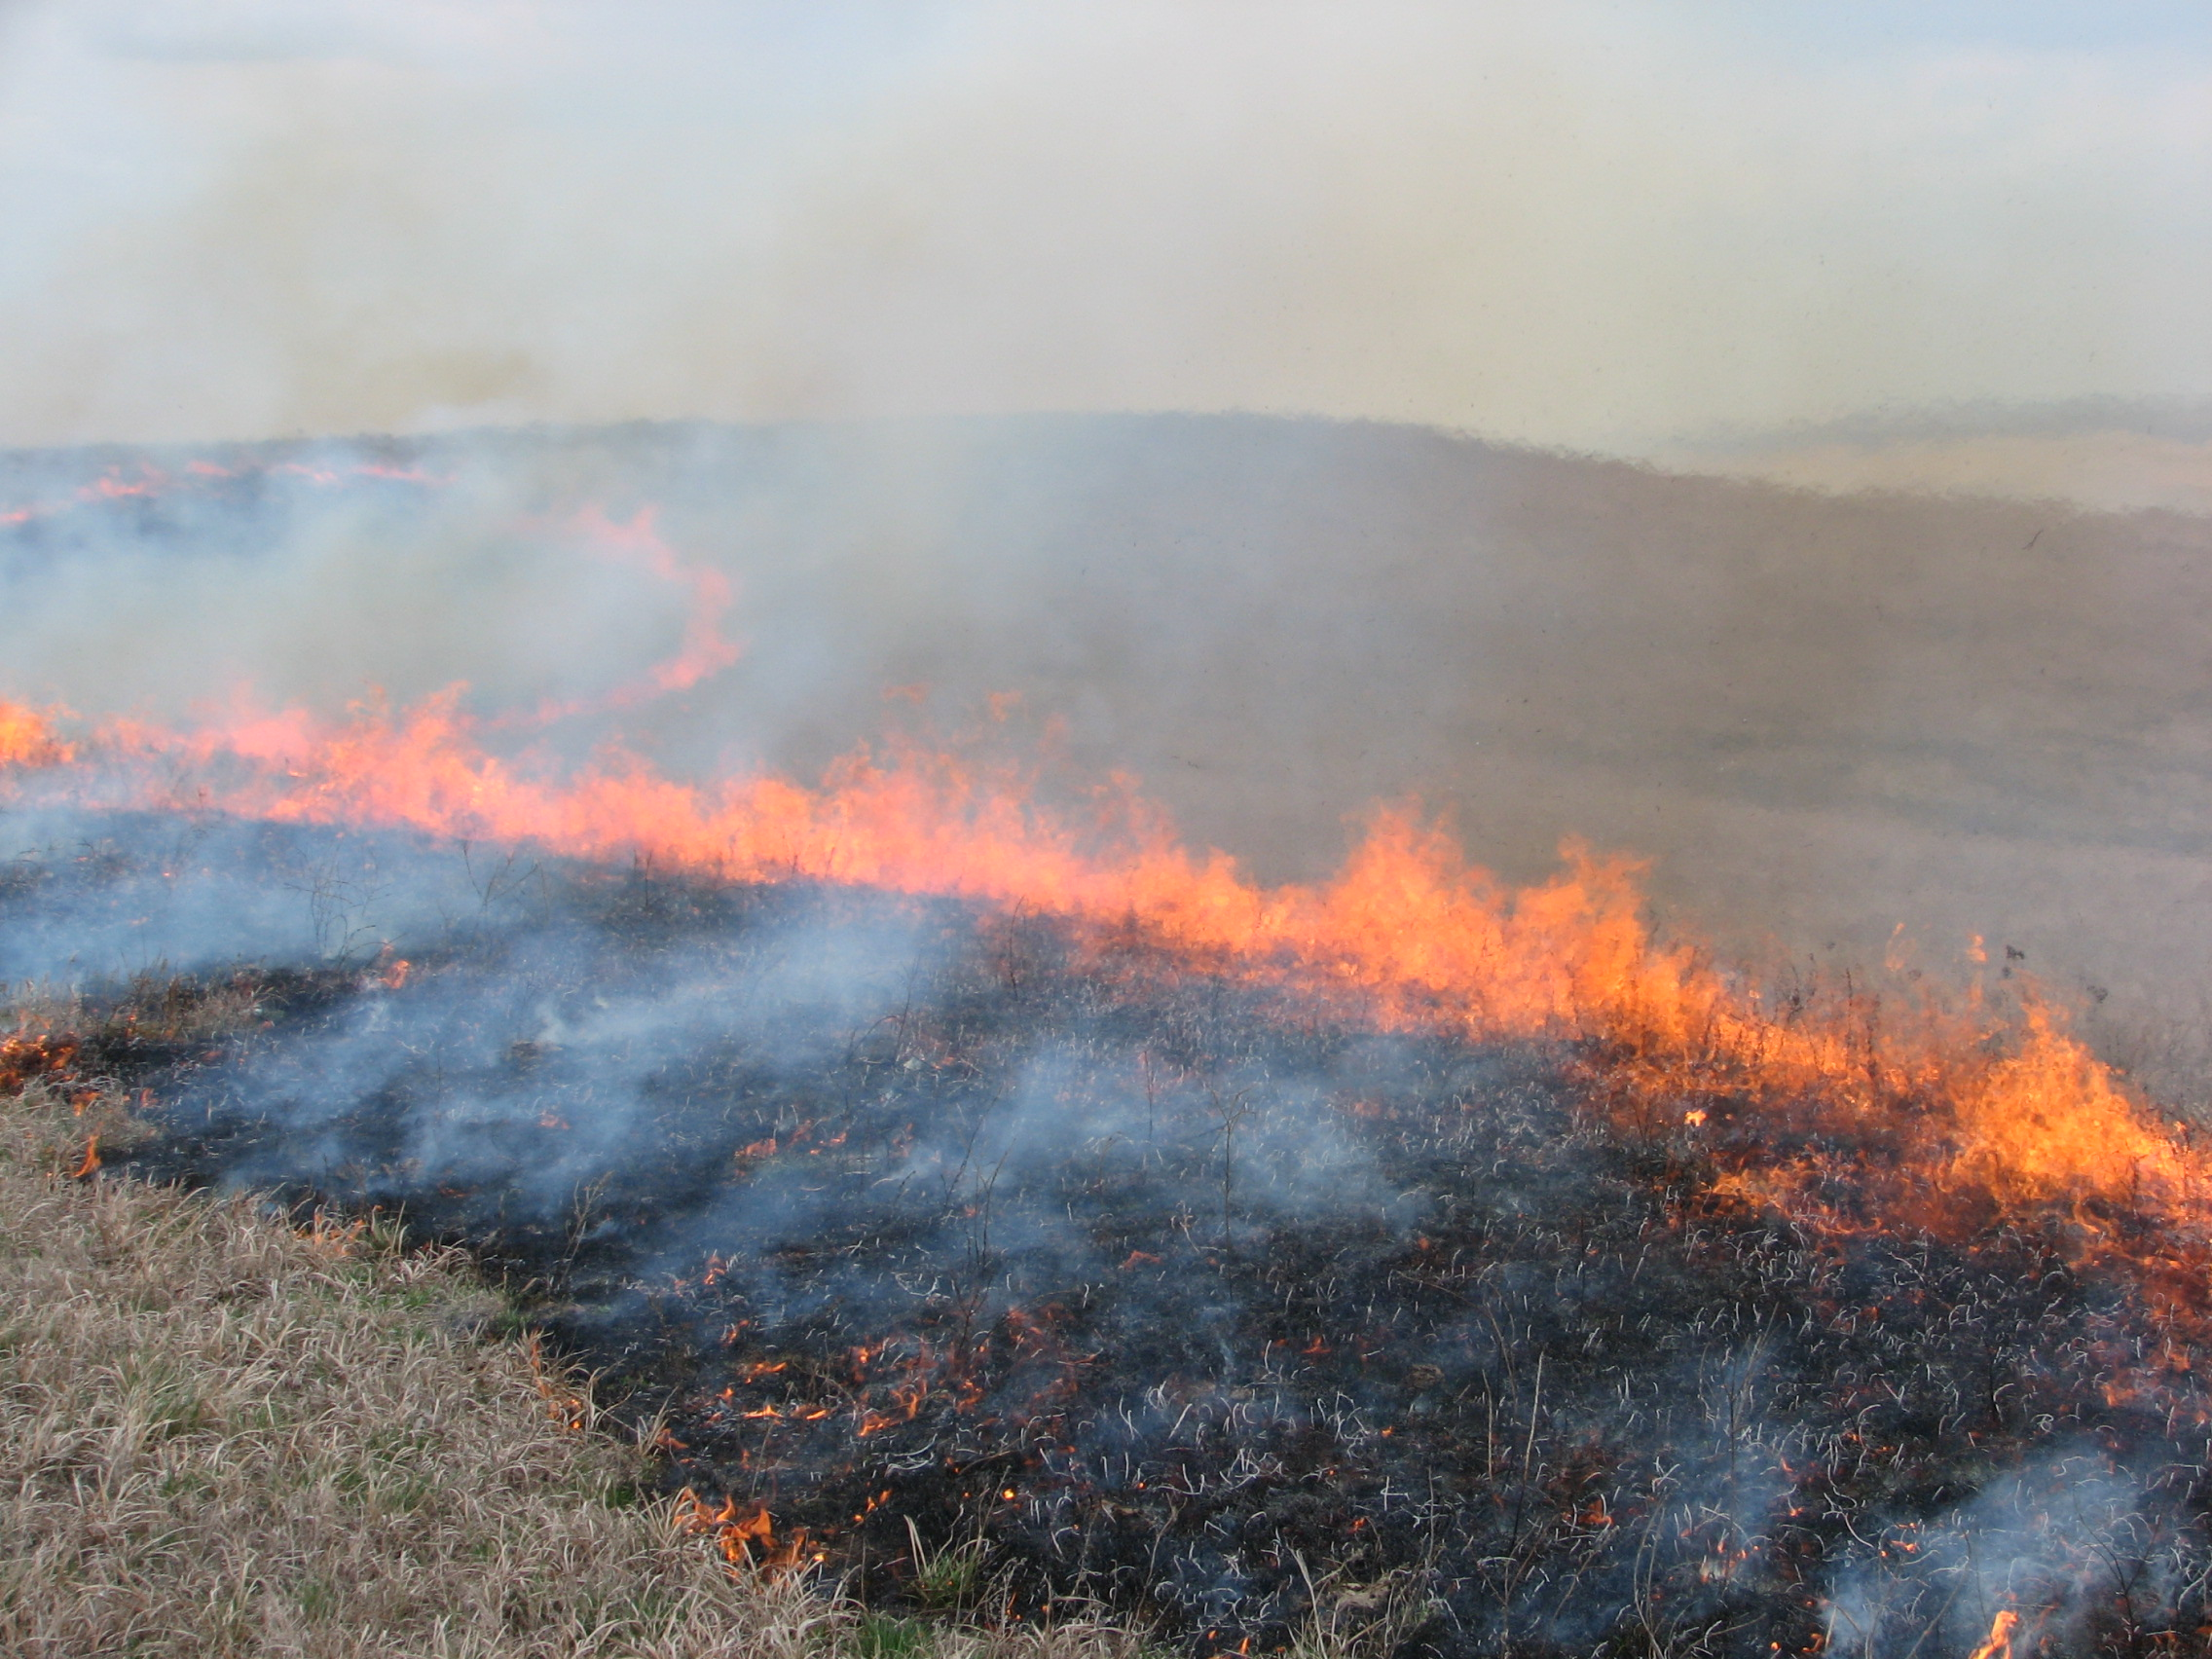 Prescribed fire on the prairie